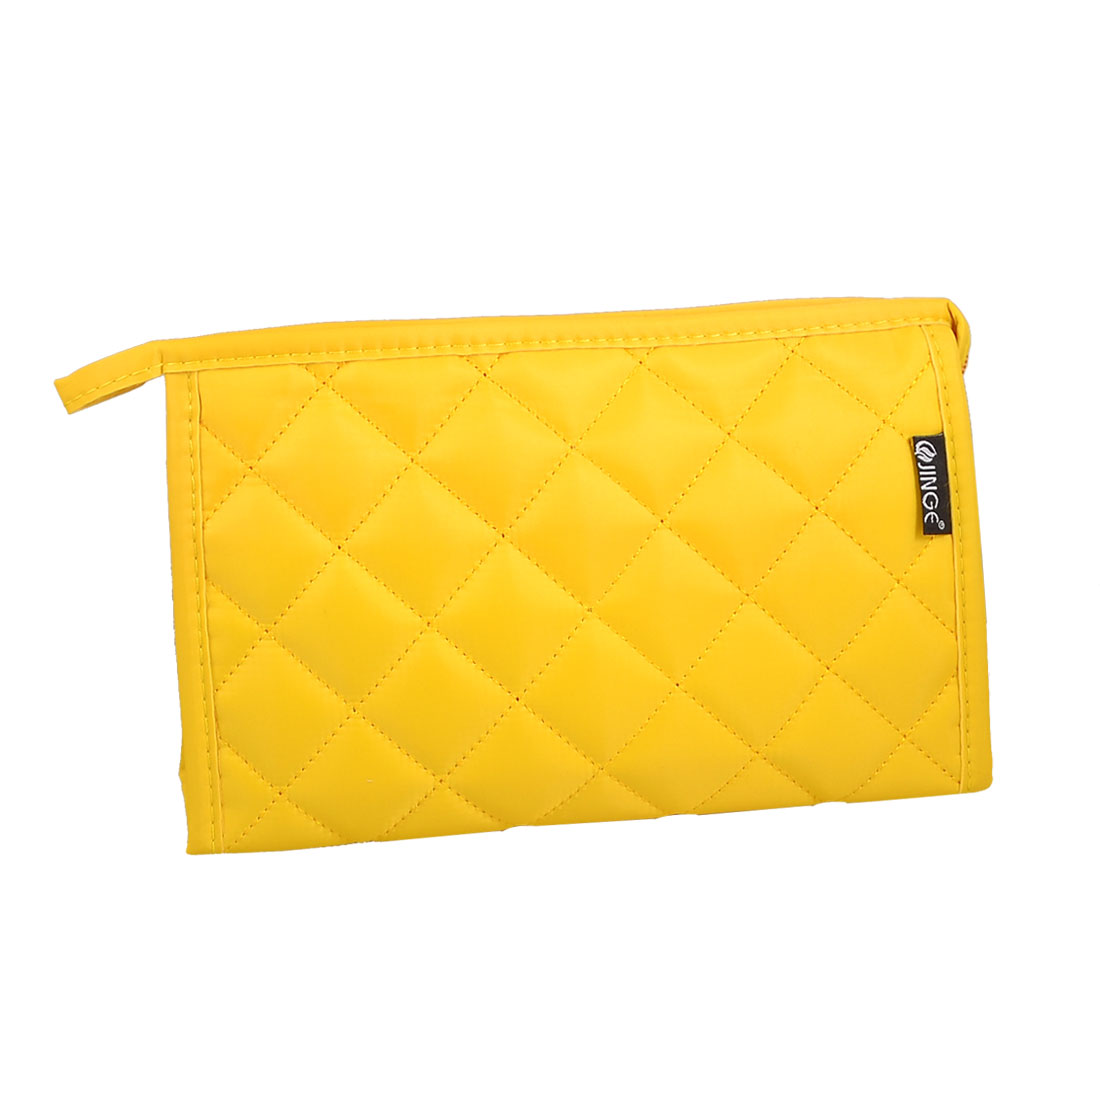 Check Pattern Zip up Rectangle Case Make up Cosmetic Bag Pouch Yellow w Mirror